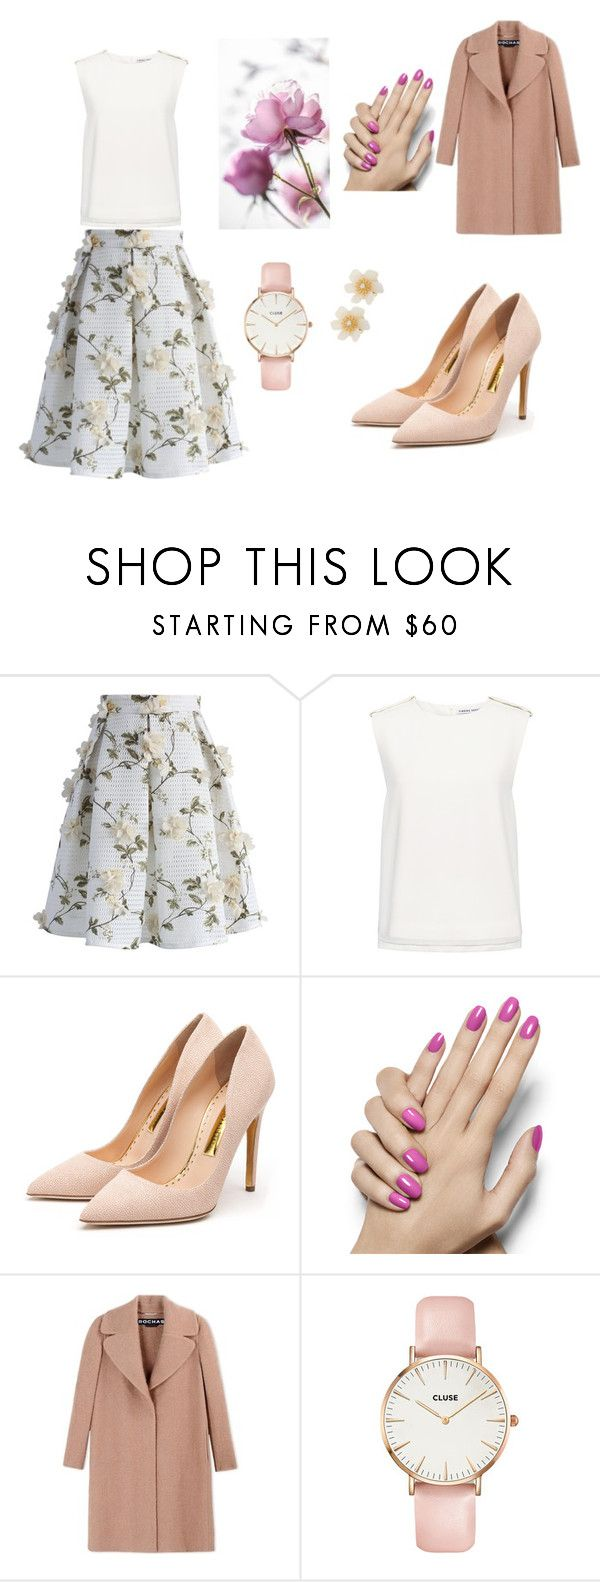 """Романтический стиль"" by venera-zakirova on Polyvore featuring мода, Chicwish, Finders Keepers, Rupert Sanderson, Rochas, CLUSE и Lydell NYC"